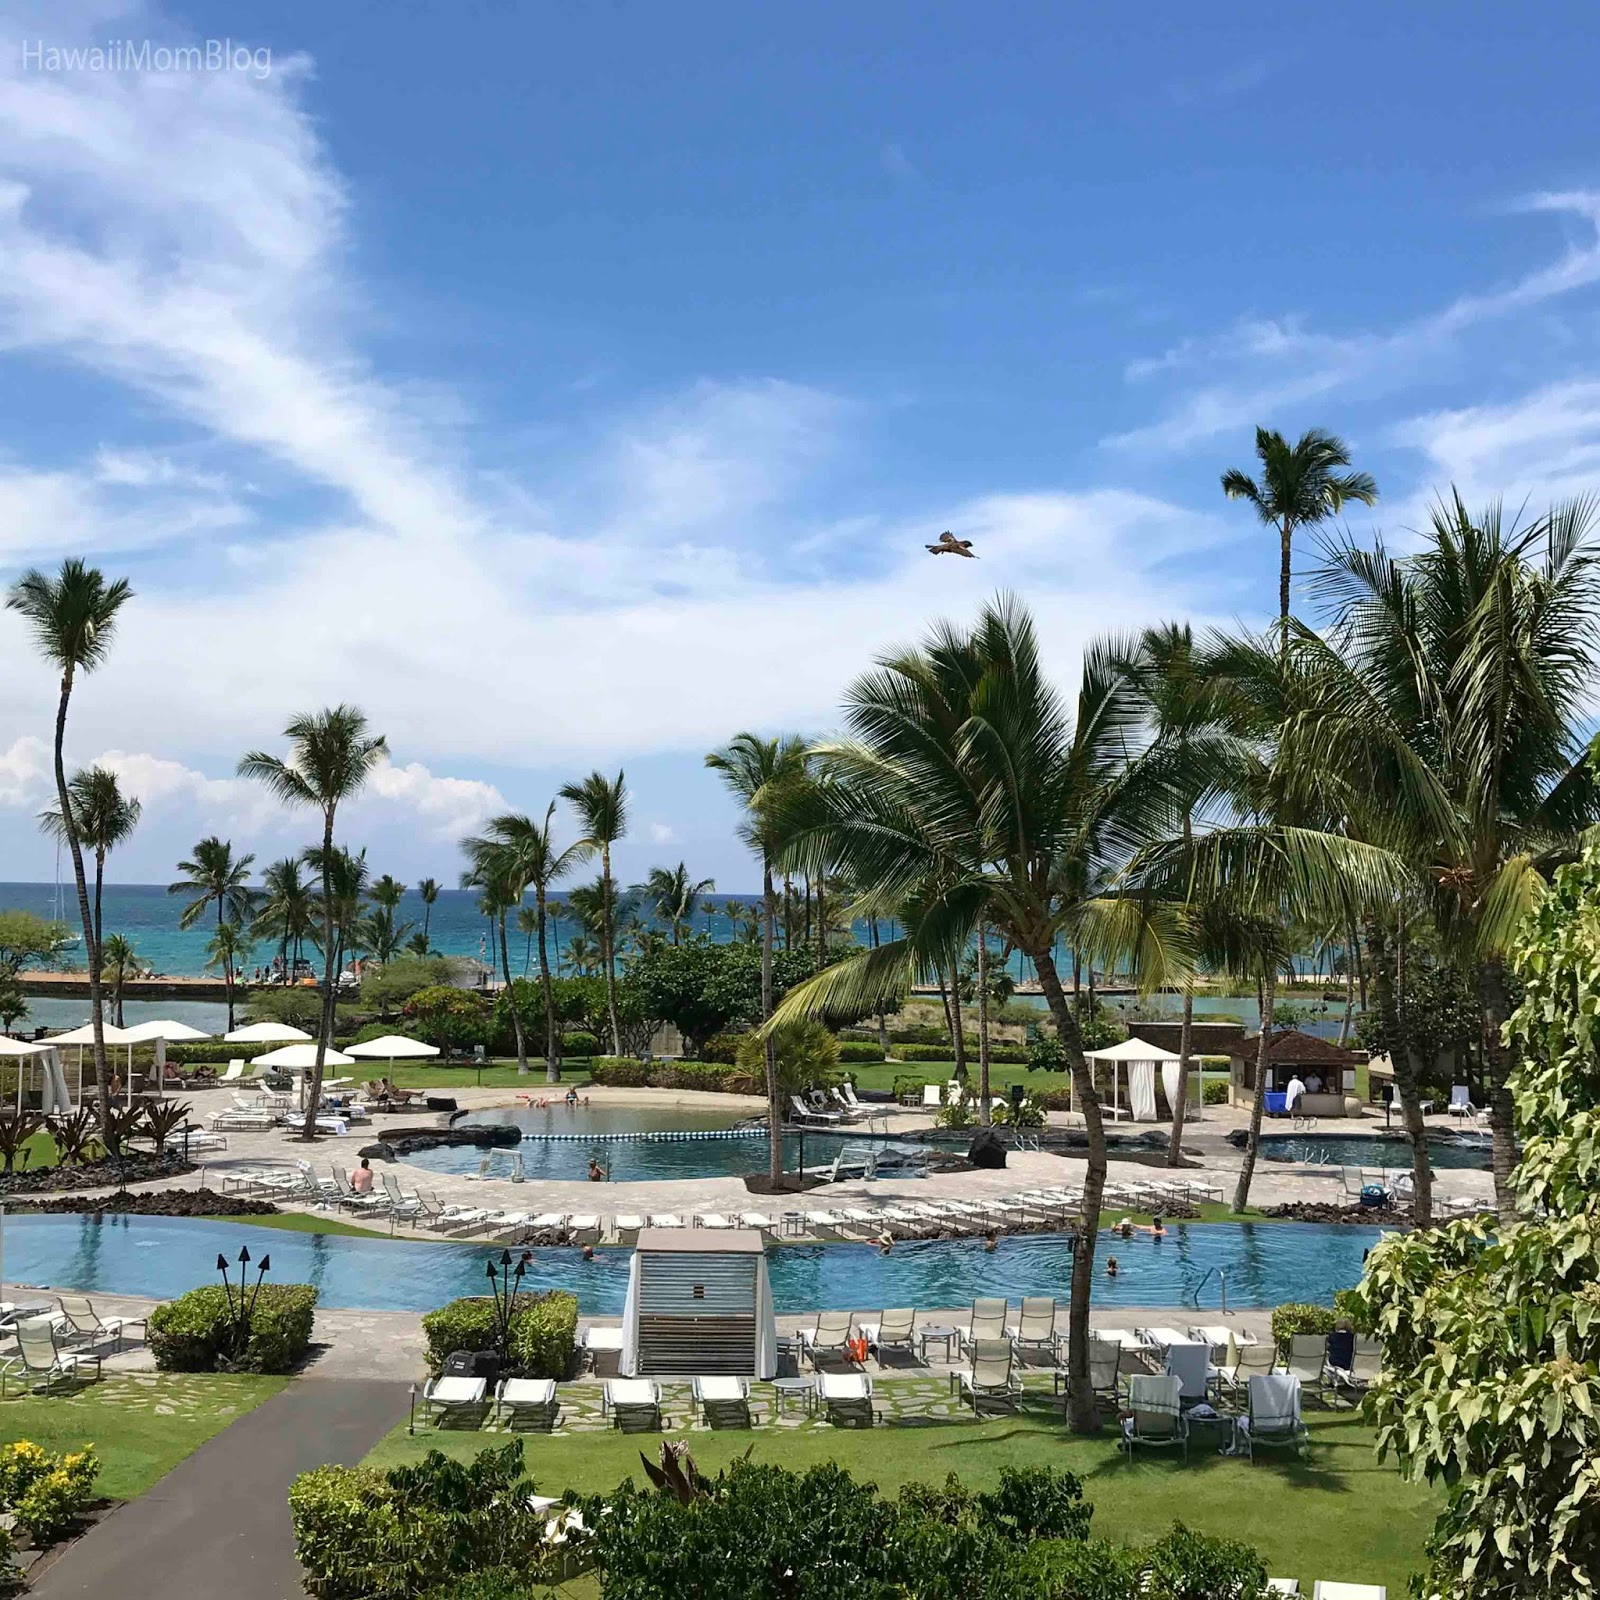 Of Course My Kids Could Not Get Enough The Pools At Waikoloa Beach Marriott Resort Spa